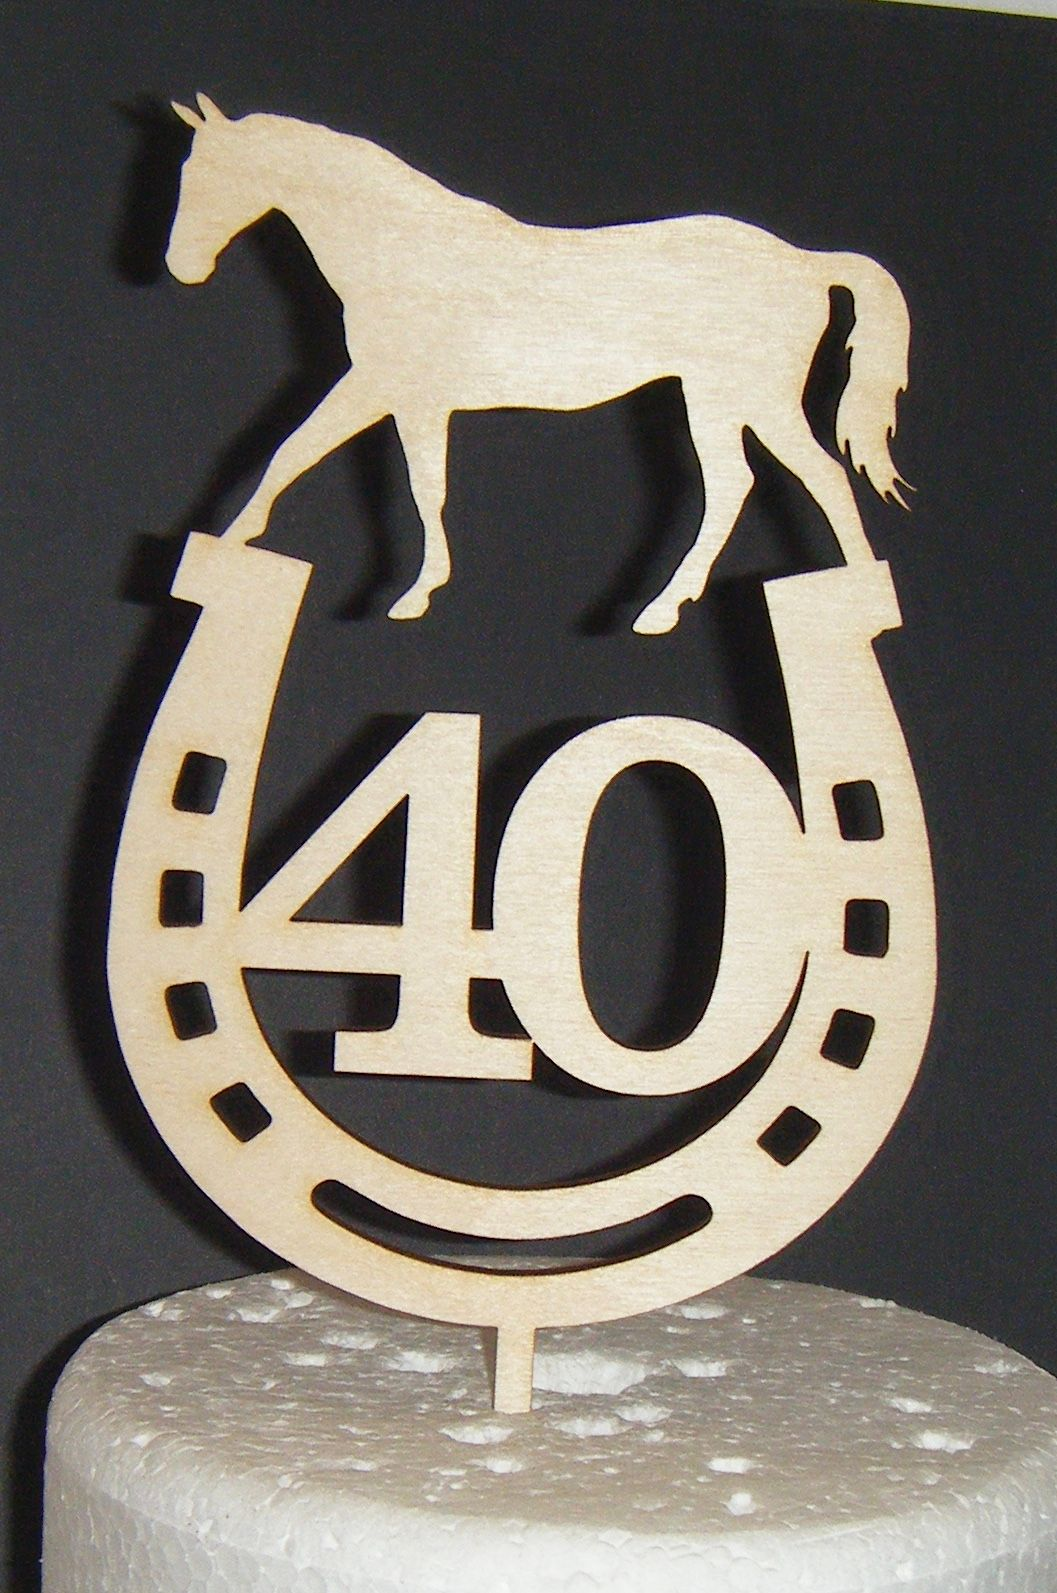 ANY Number 40 or 21, 18, 30, 50, etc with Horse and Horseshoe Cake Topper